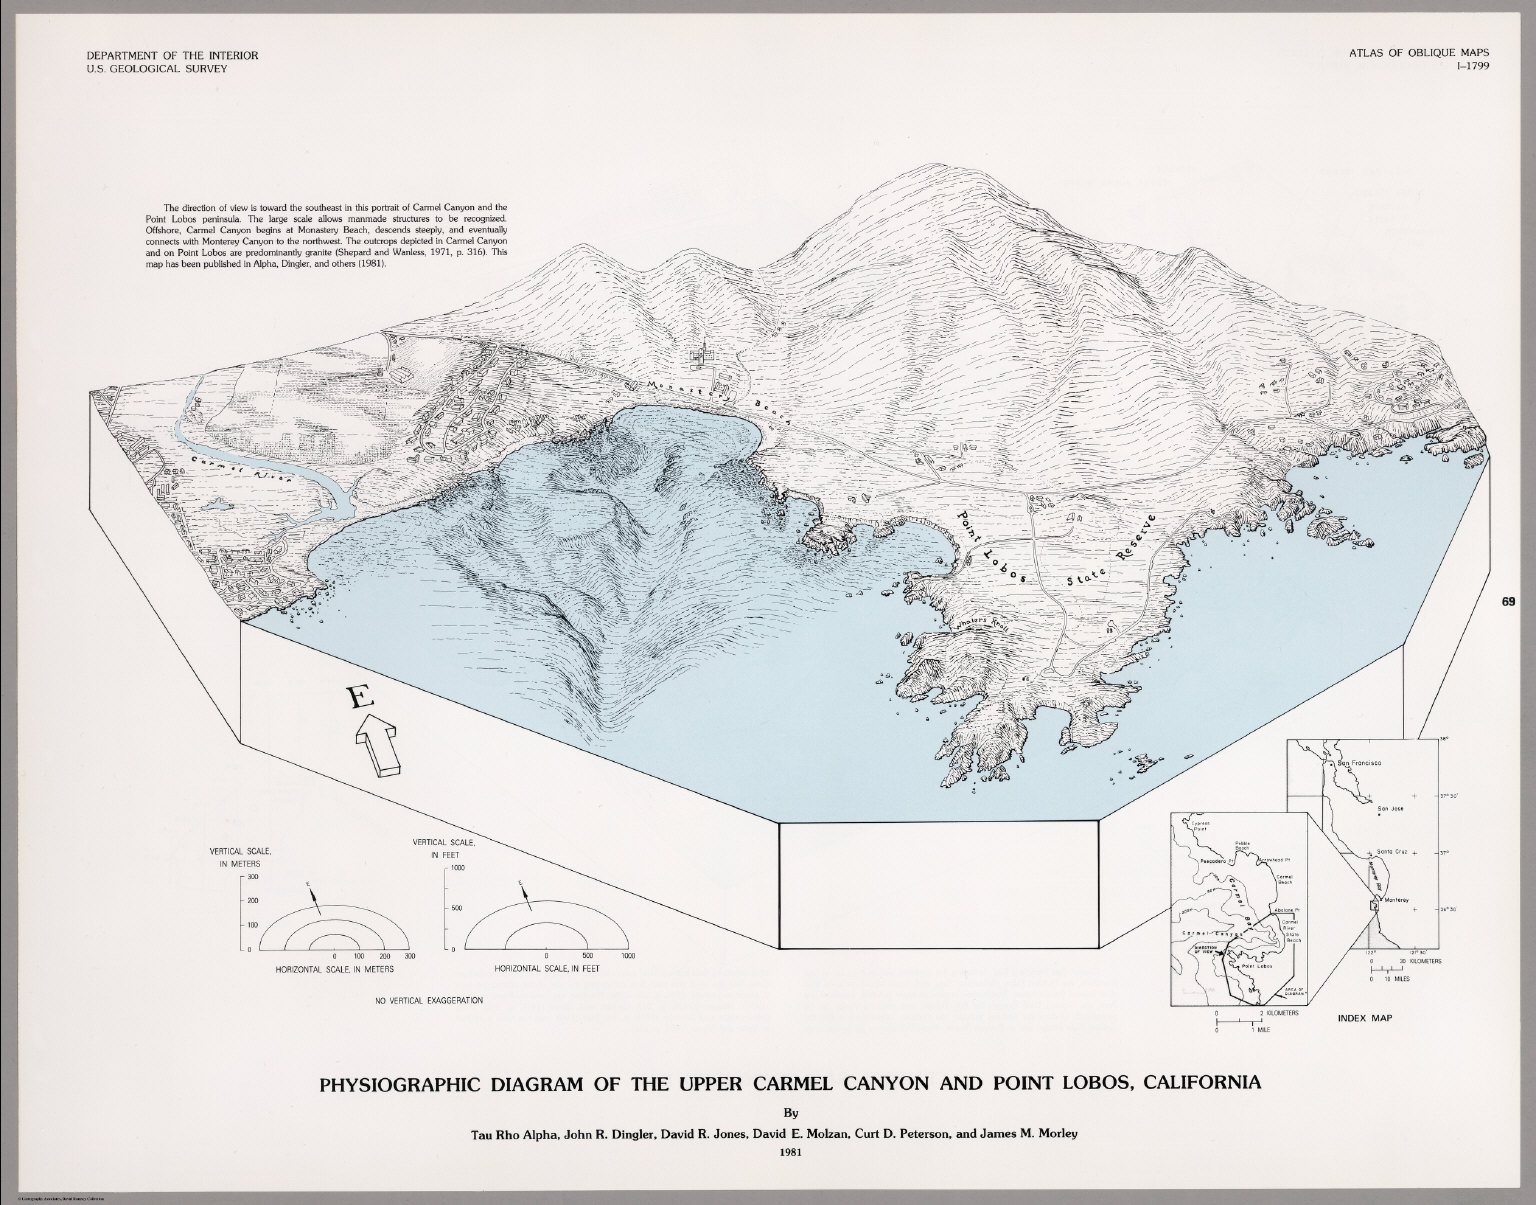 Physiographic diagram of the upper carmel canyon and point lobos physiographic diagram of the upper carmel canyon and point lobos california ccuart Choice Image